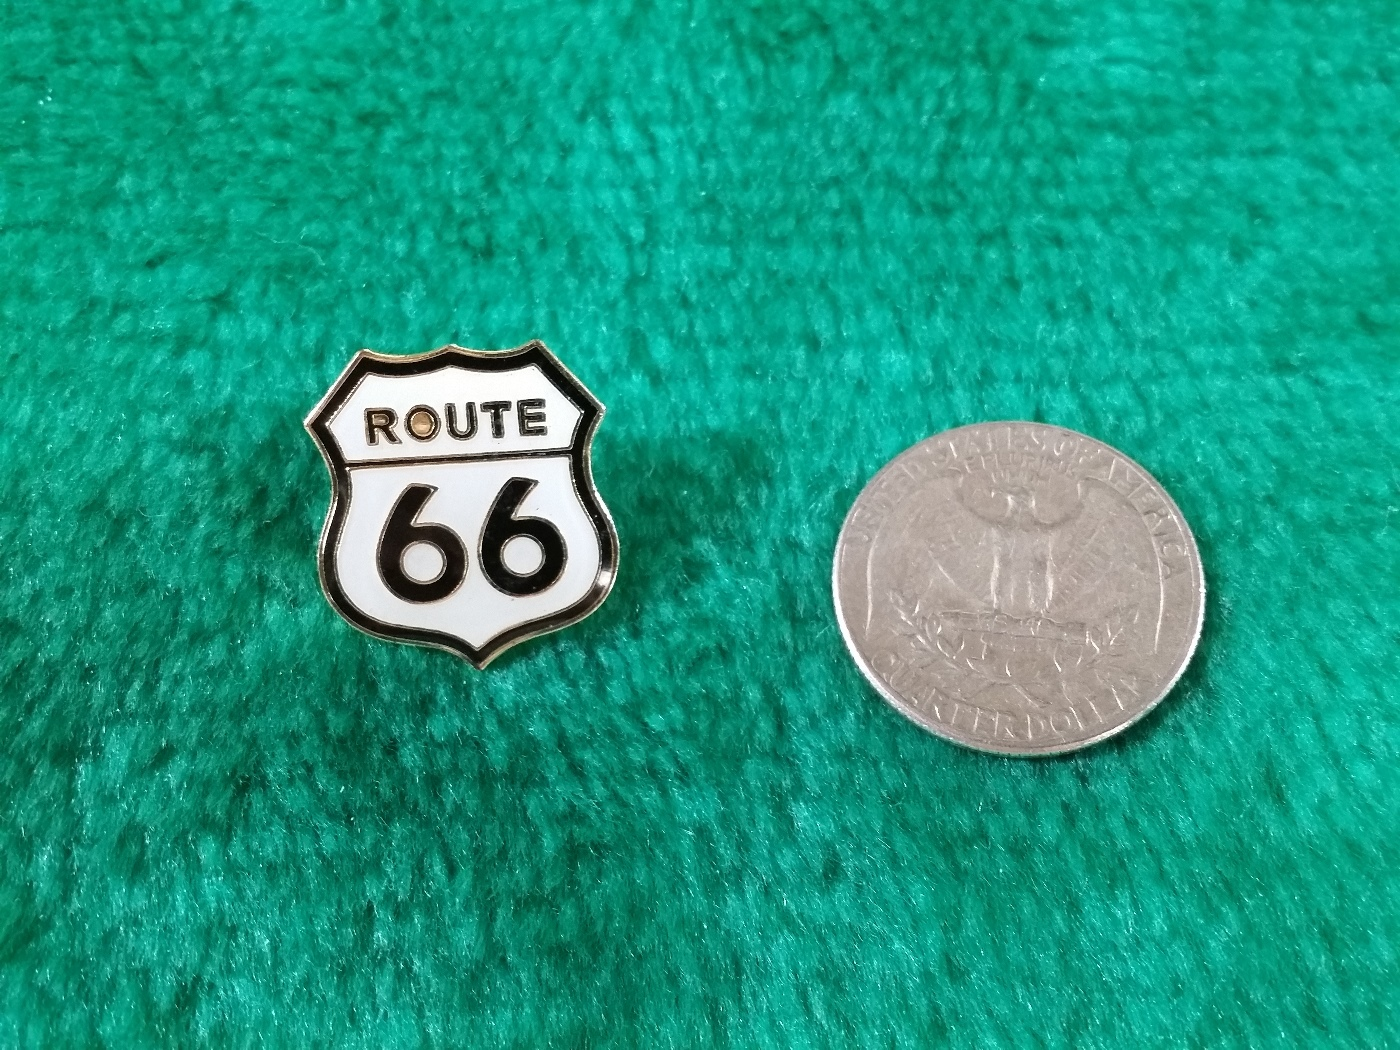 Route 66 Shield Street Sign Lapel Pin